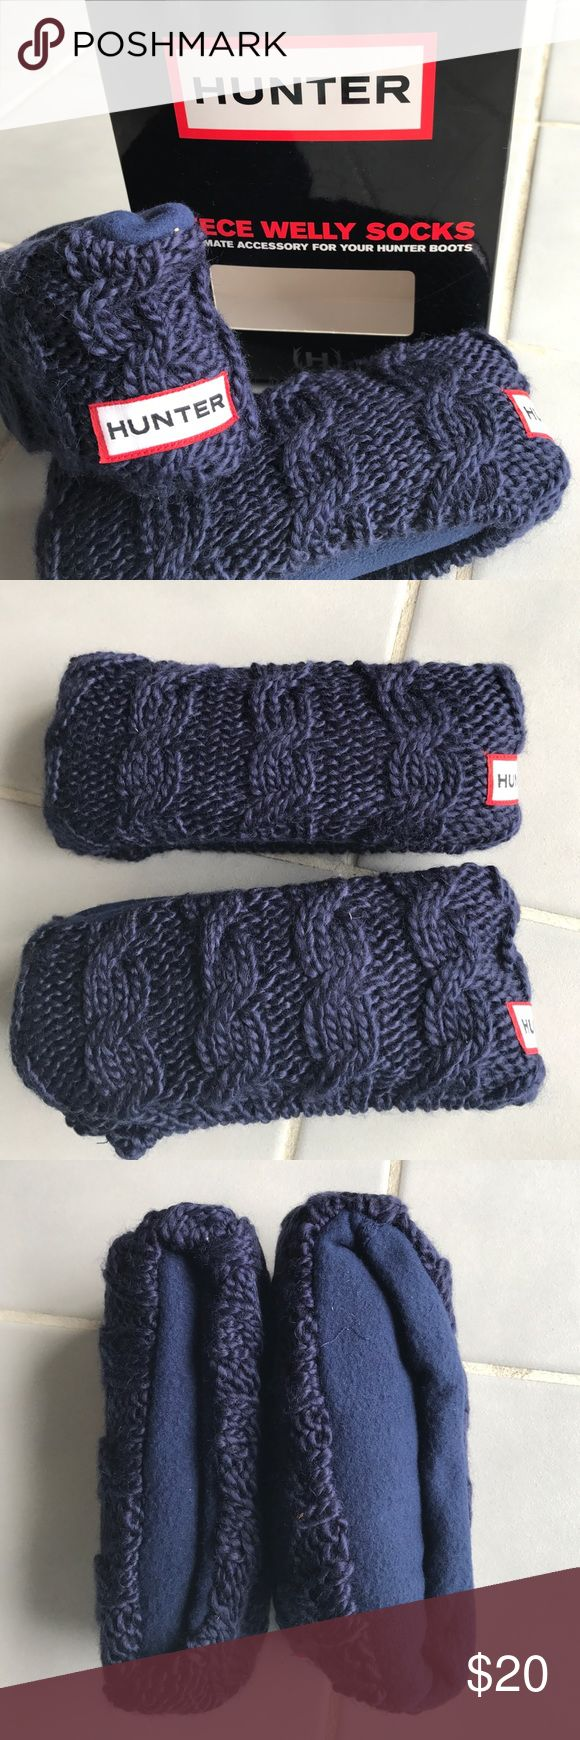 NWT Navy Hunter Fleece Welly Socks 💙 New in box! Hunter fleece Welly socks in the color navy. Cable knit cuff. Size Women's 8-10. Hunter Boots Accessories Hosiery & Socks